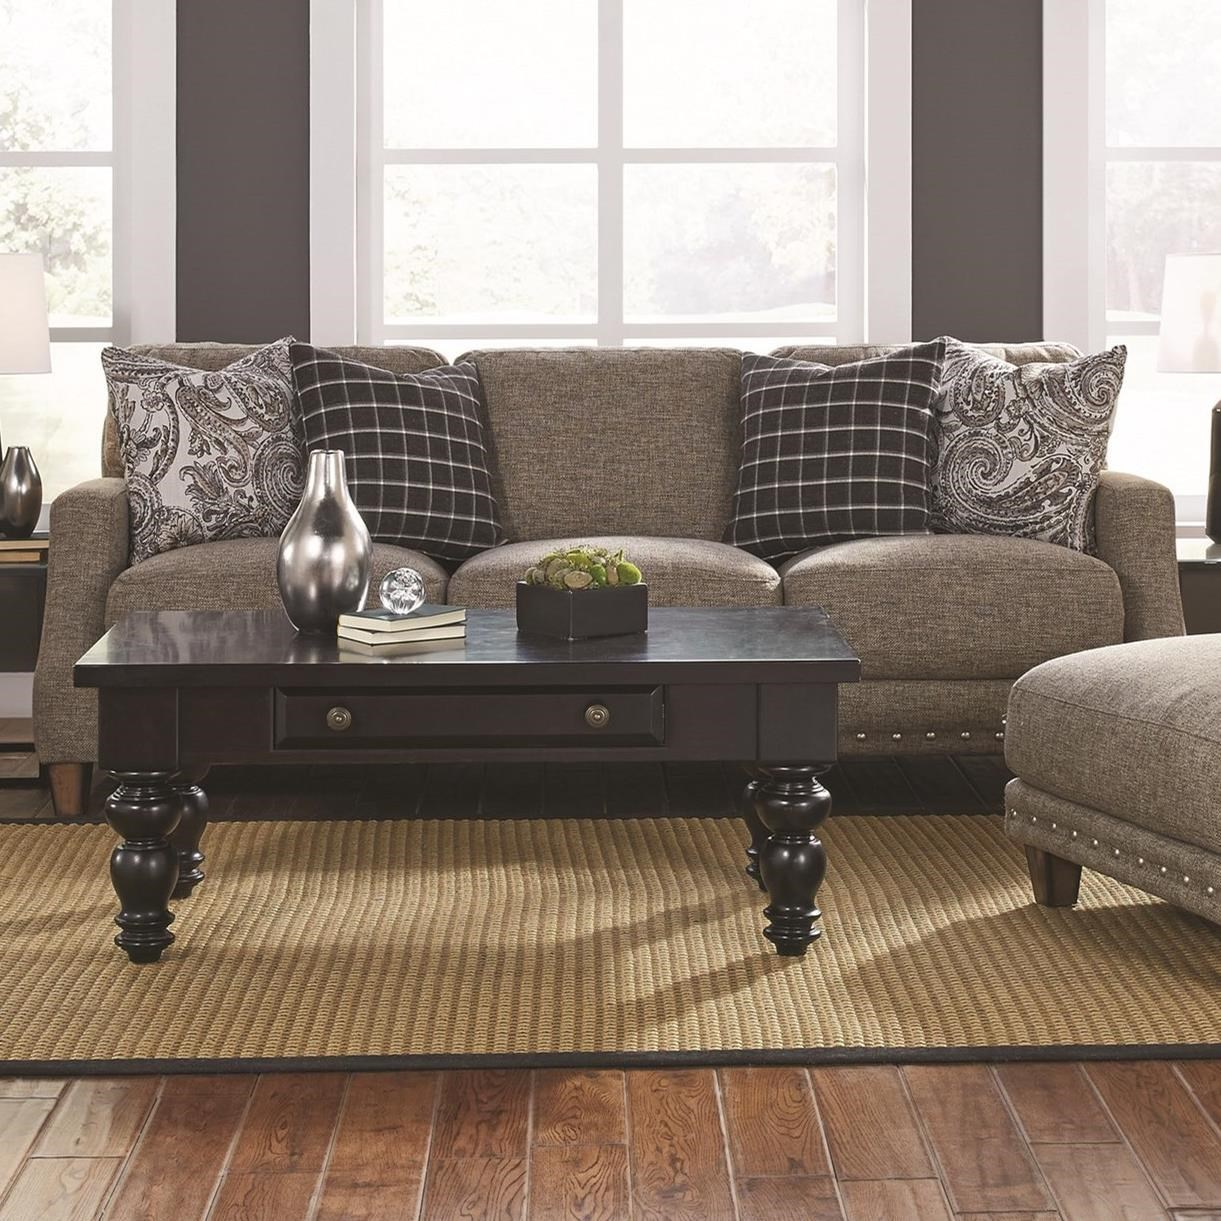 Sofa With Transitional Style 863 By Franklin Wilcox Furniture Sofas Corpus Christi